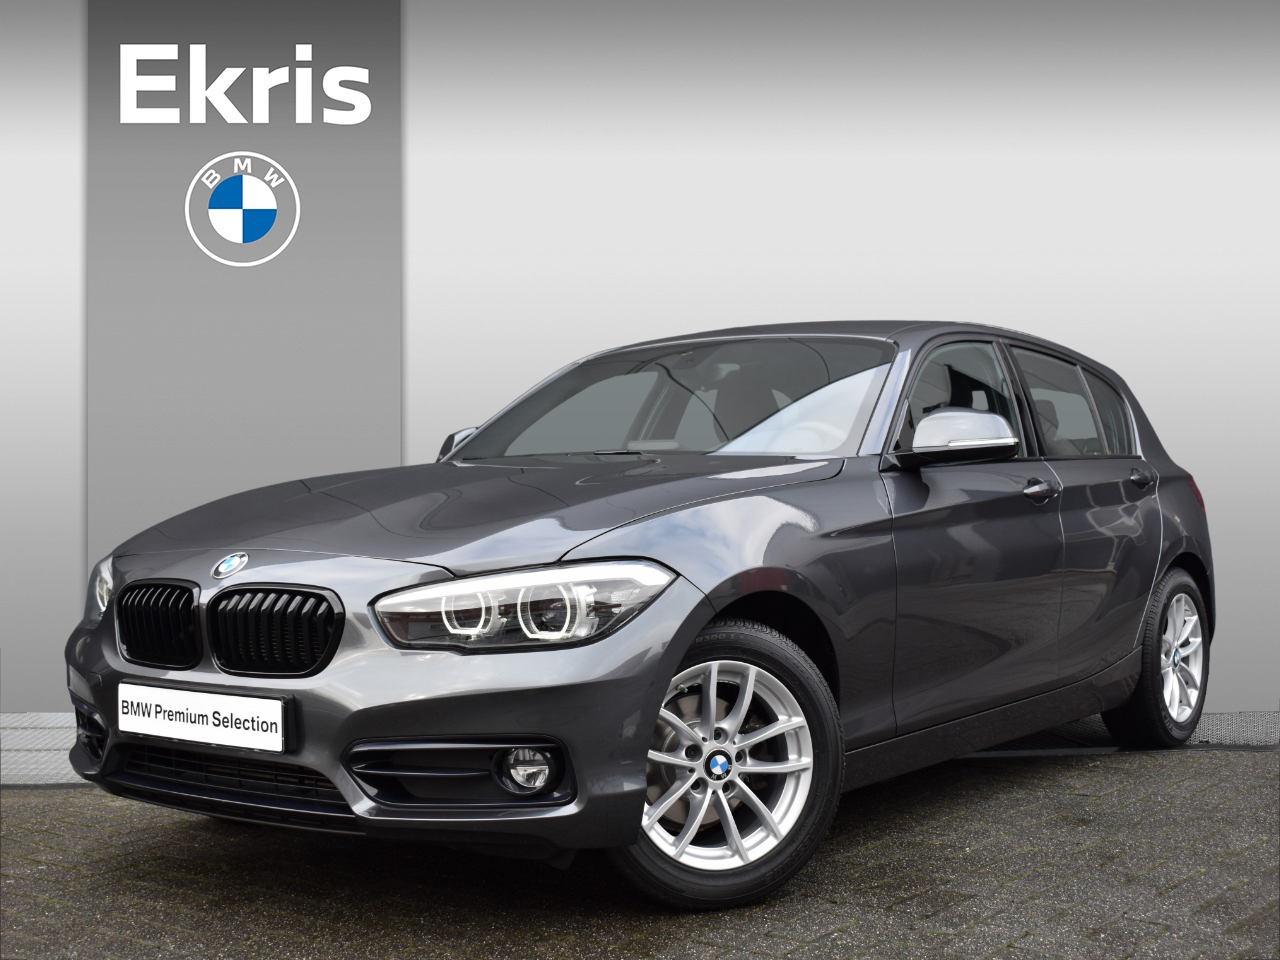 "Bmw 1 serie 118i aut. corporate lease executive shadow line / sportstoelen / navigatie / pdc / 16"" - 2 jaar garantie!!"